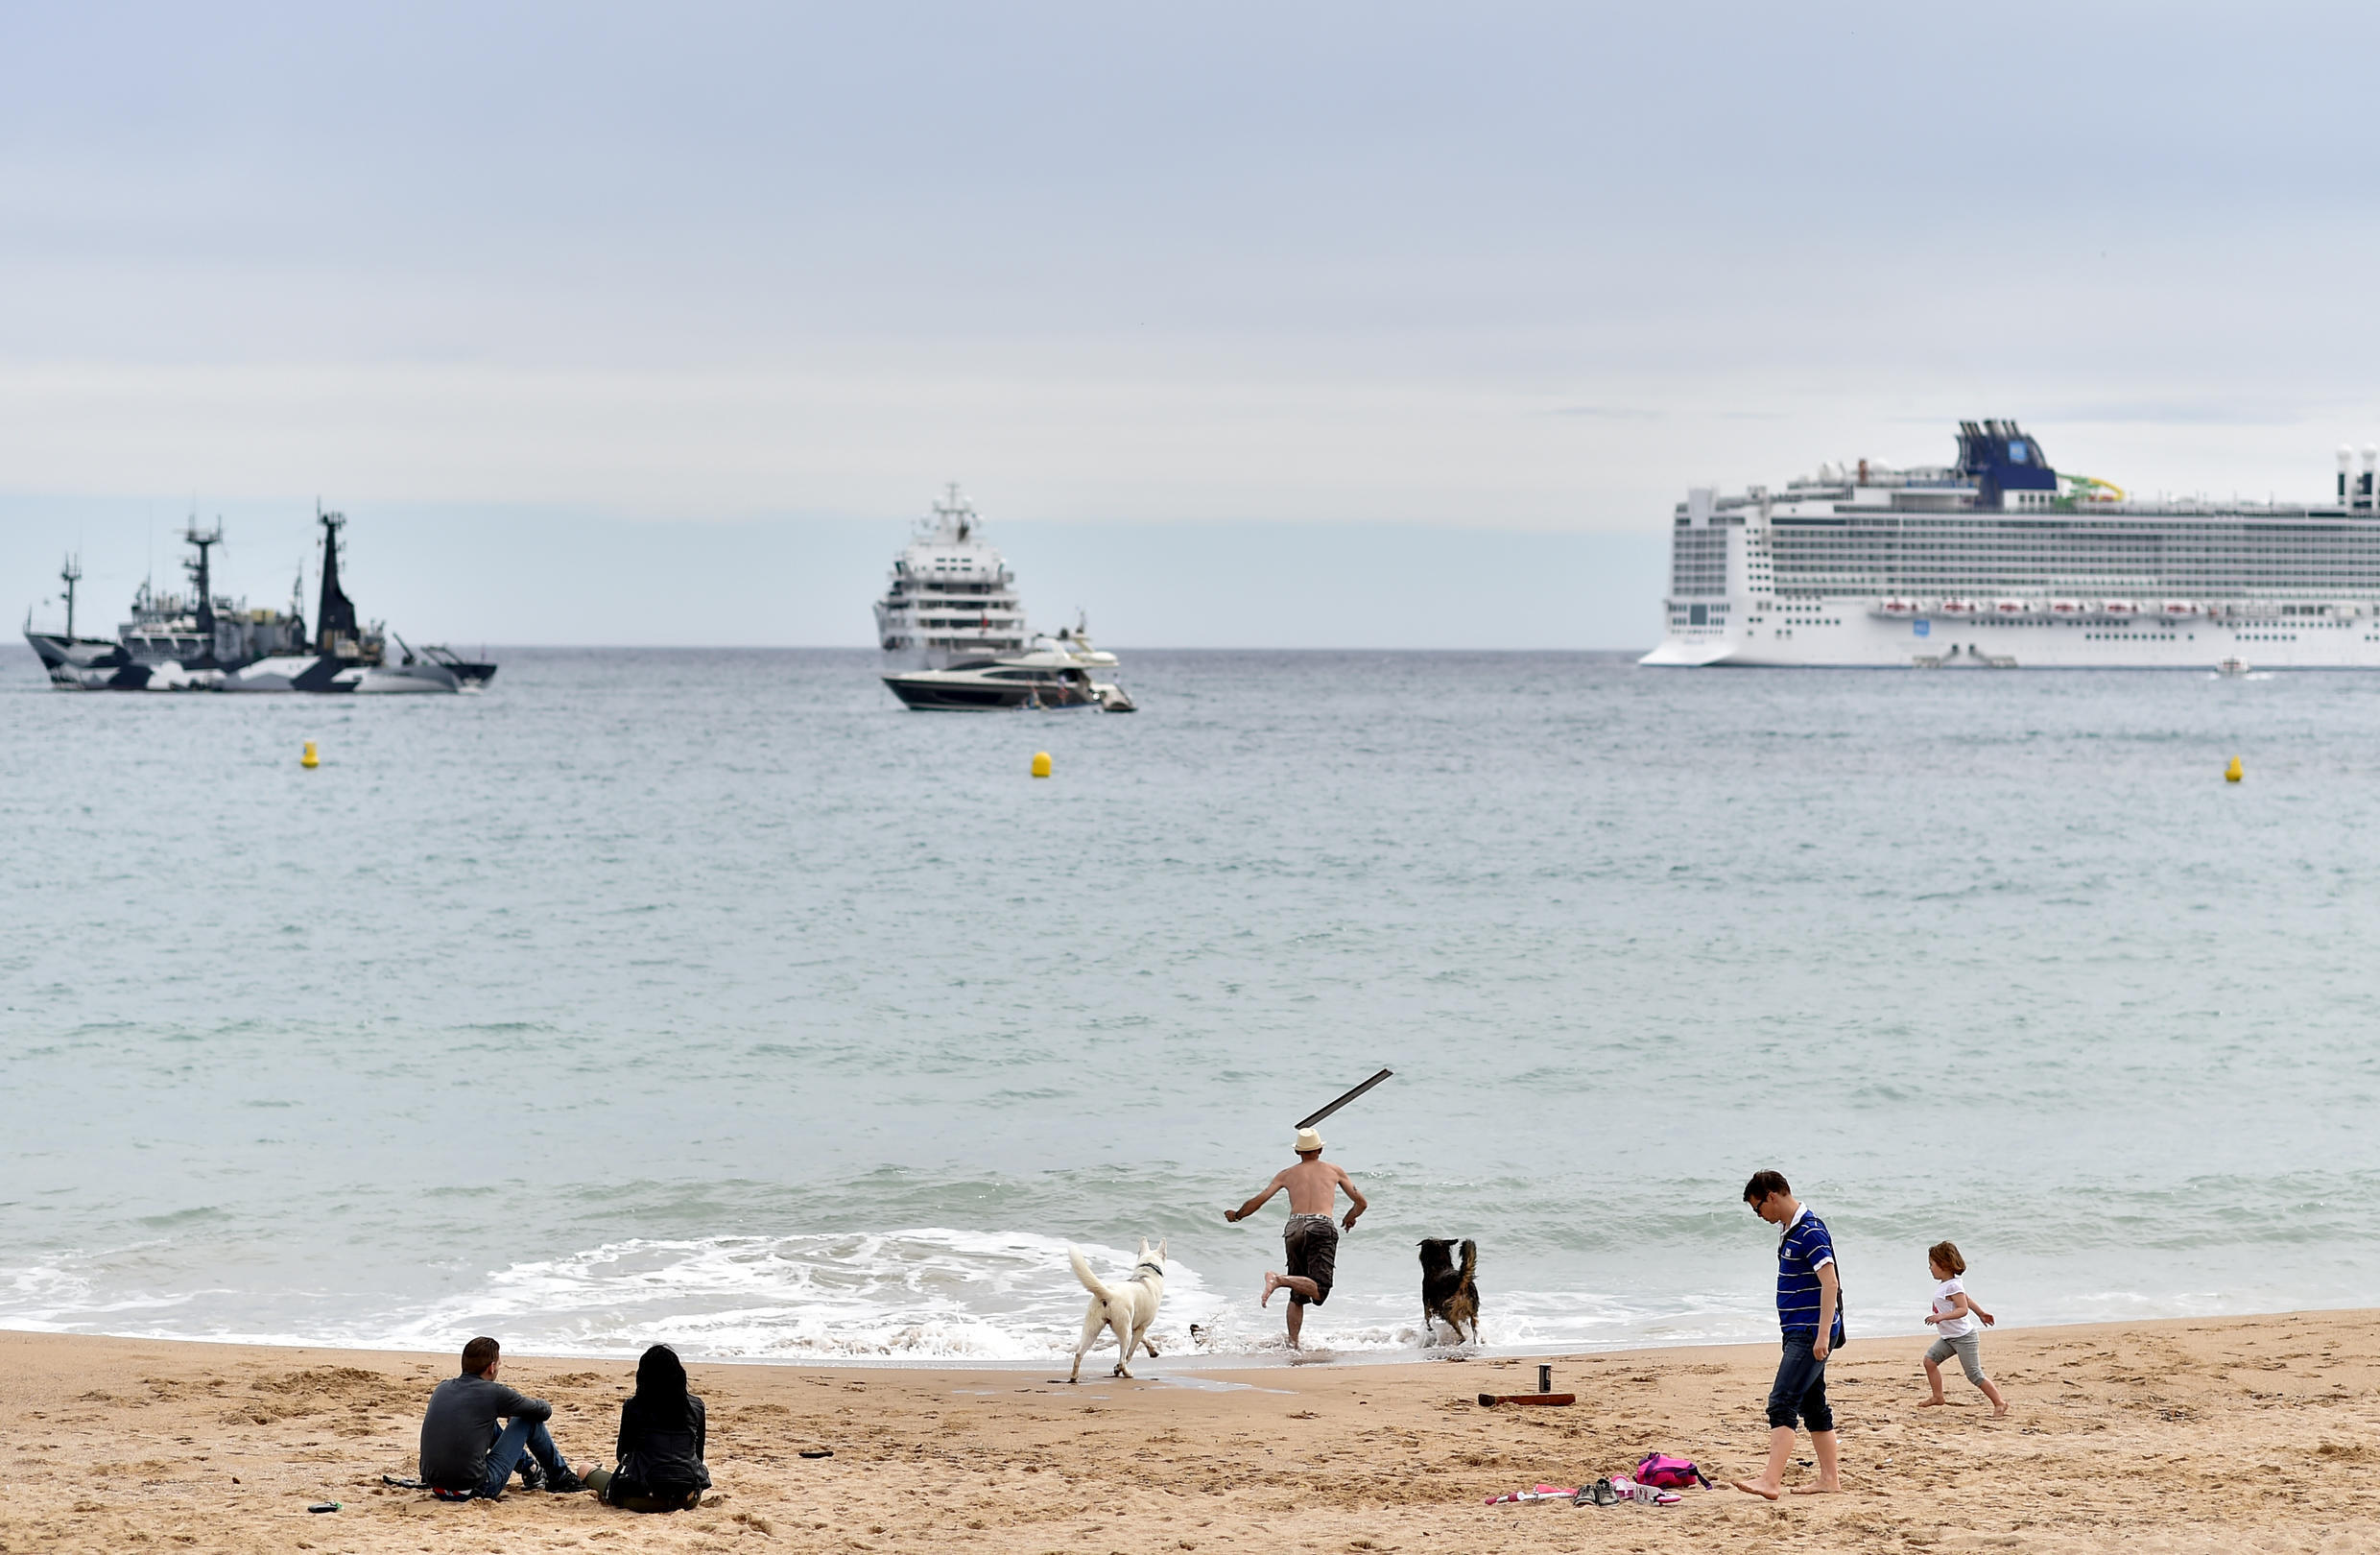 Villeneuve-Loubet became the second French Riviera town after Cannes (seen in the file picture) to ban burkinis from its beaches.